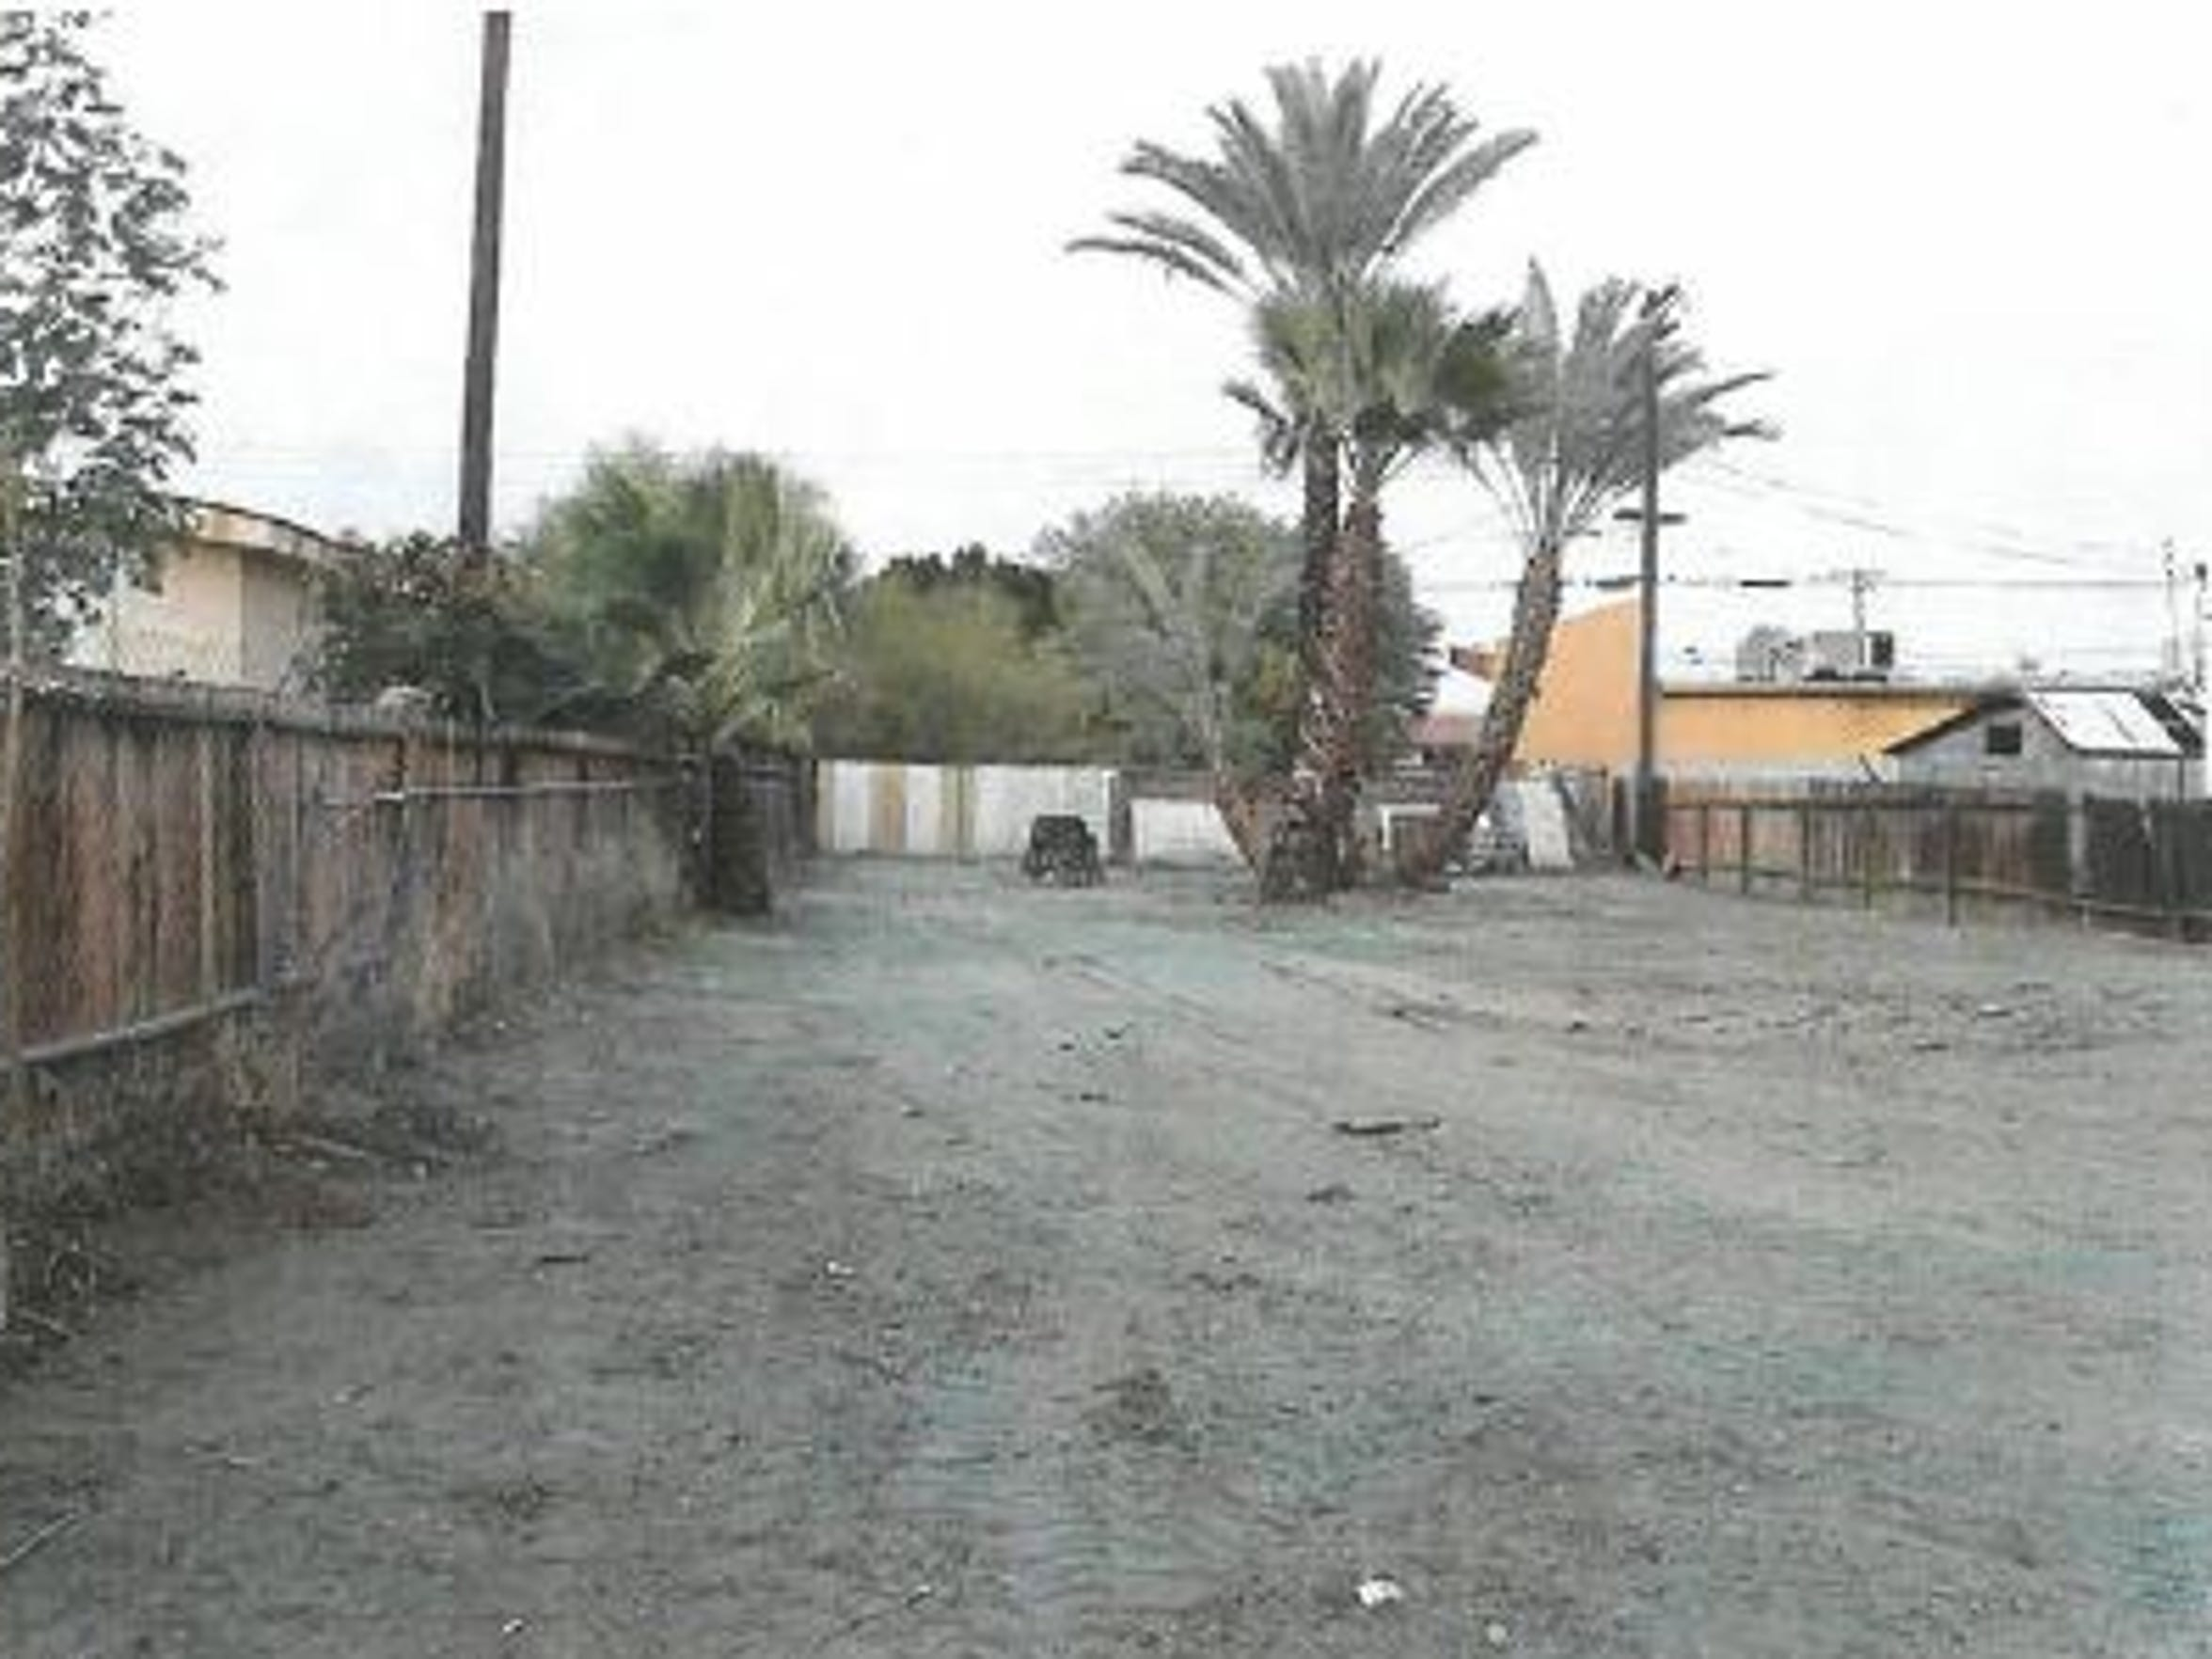 This is Marjorie Sansom's Seventh Street property, as it appeared after it was cleaned up by Coachella in 2015.